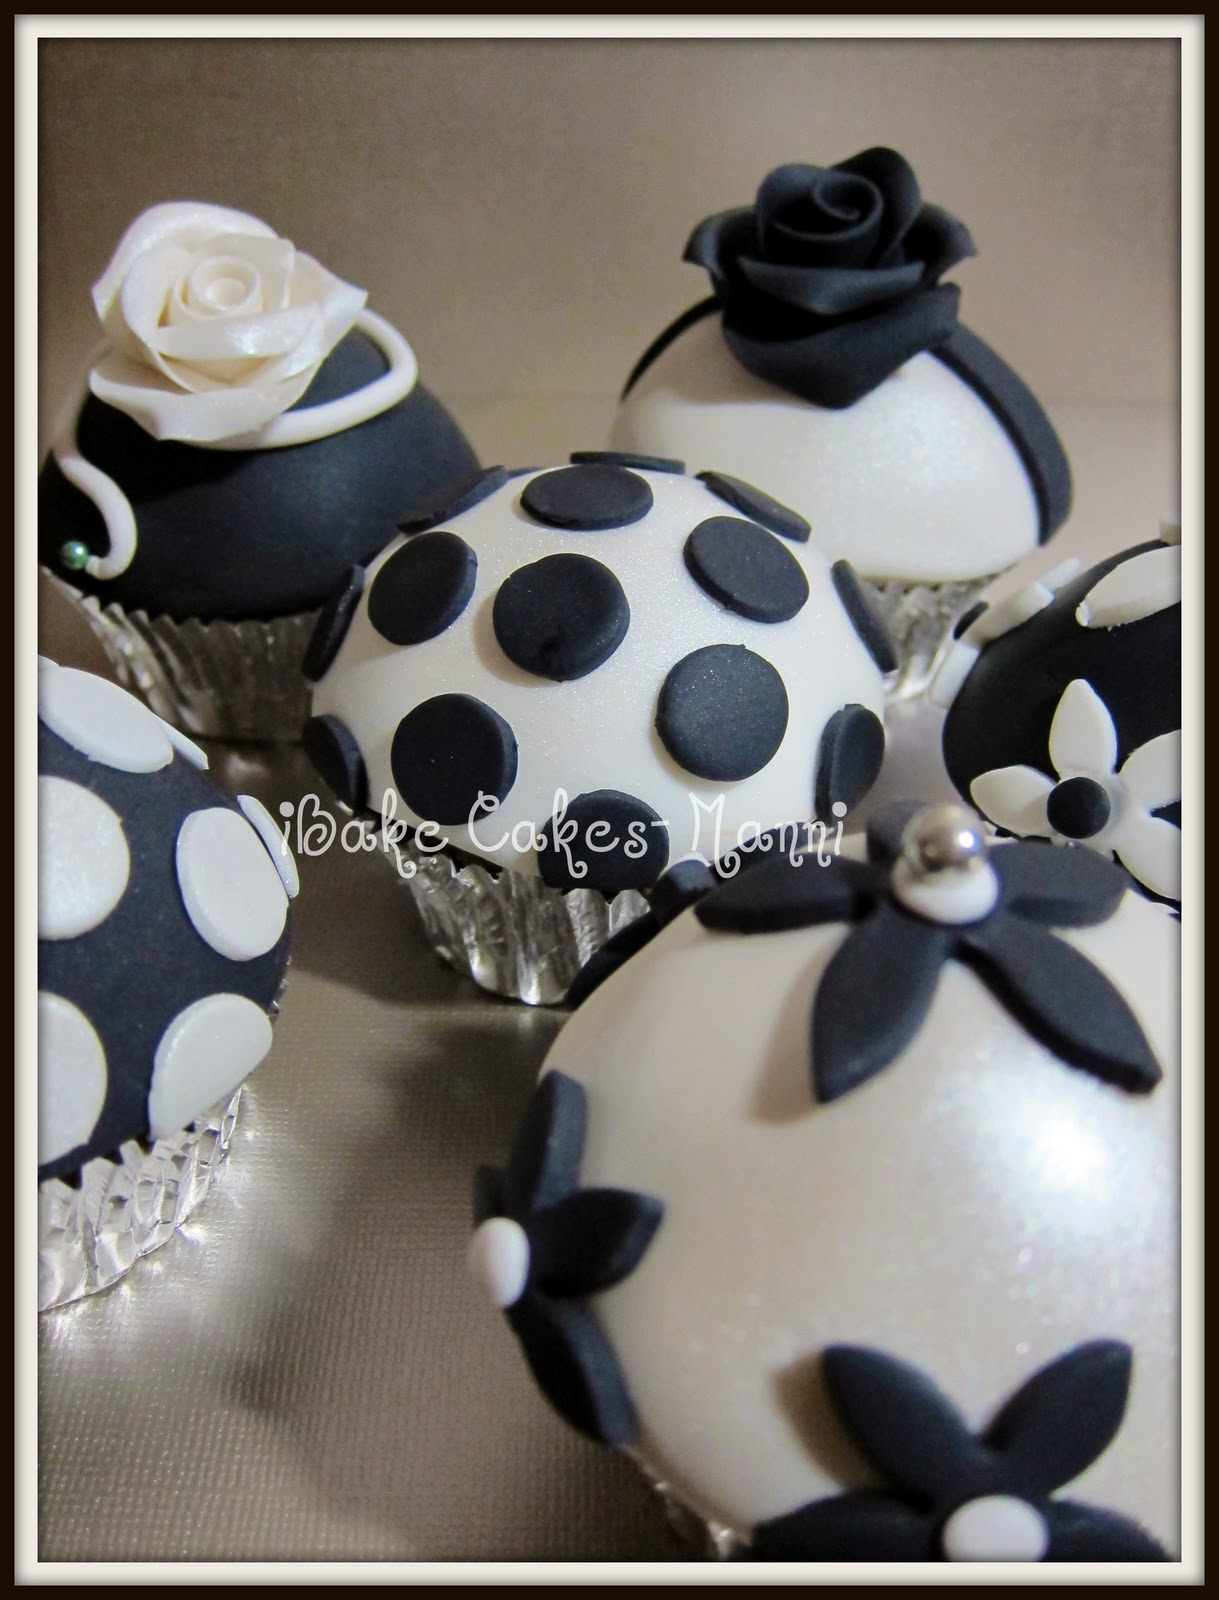 Black And White Cupcake Images : Black And White Cupcakes - Male Models Picture